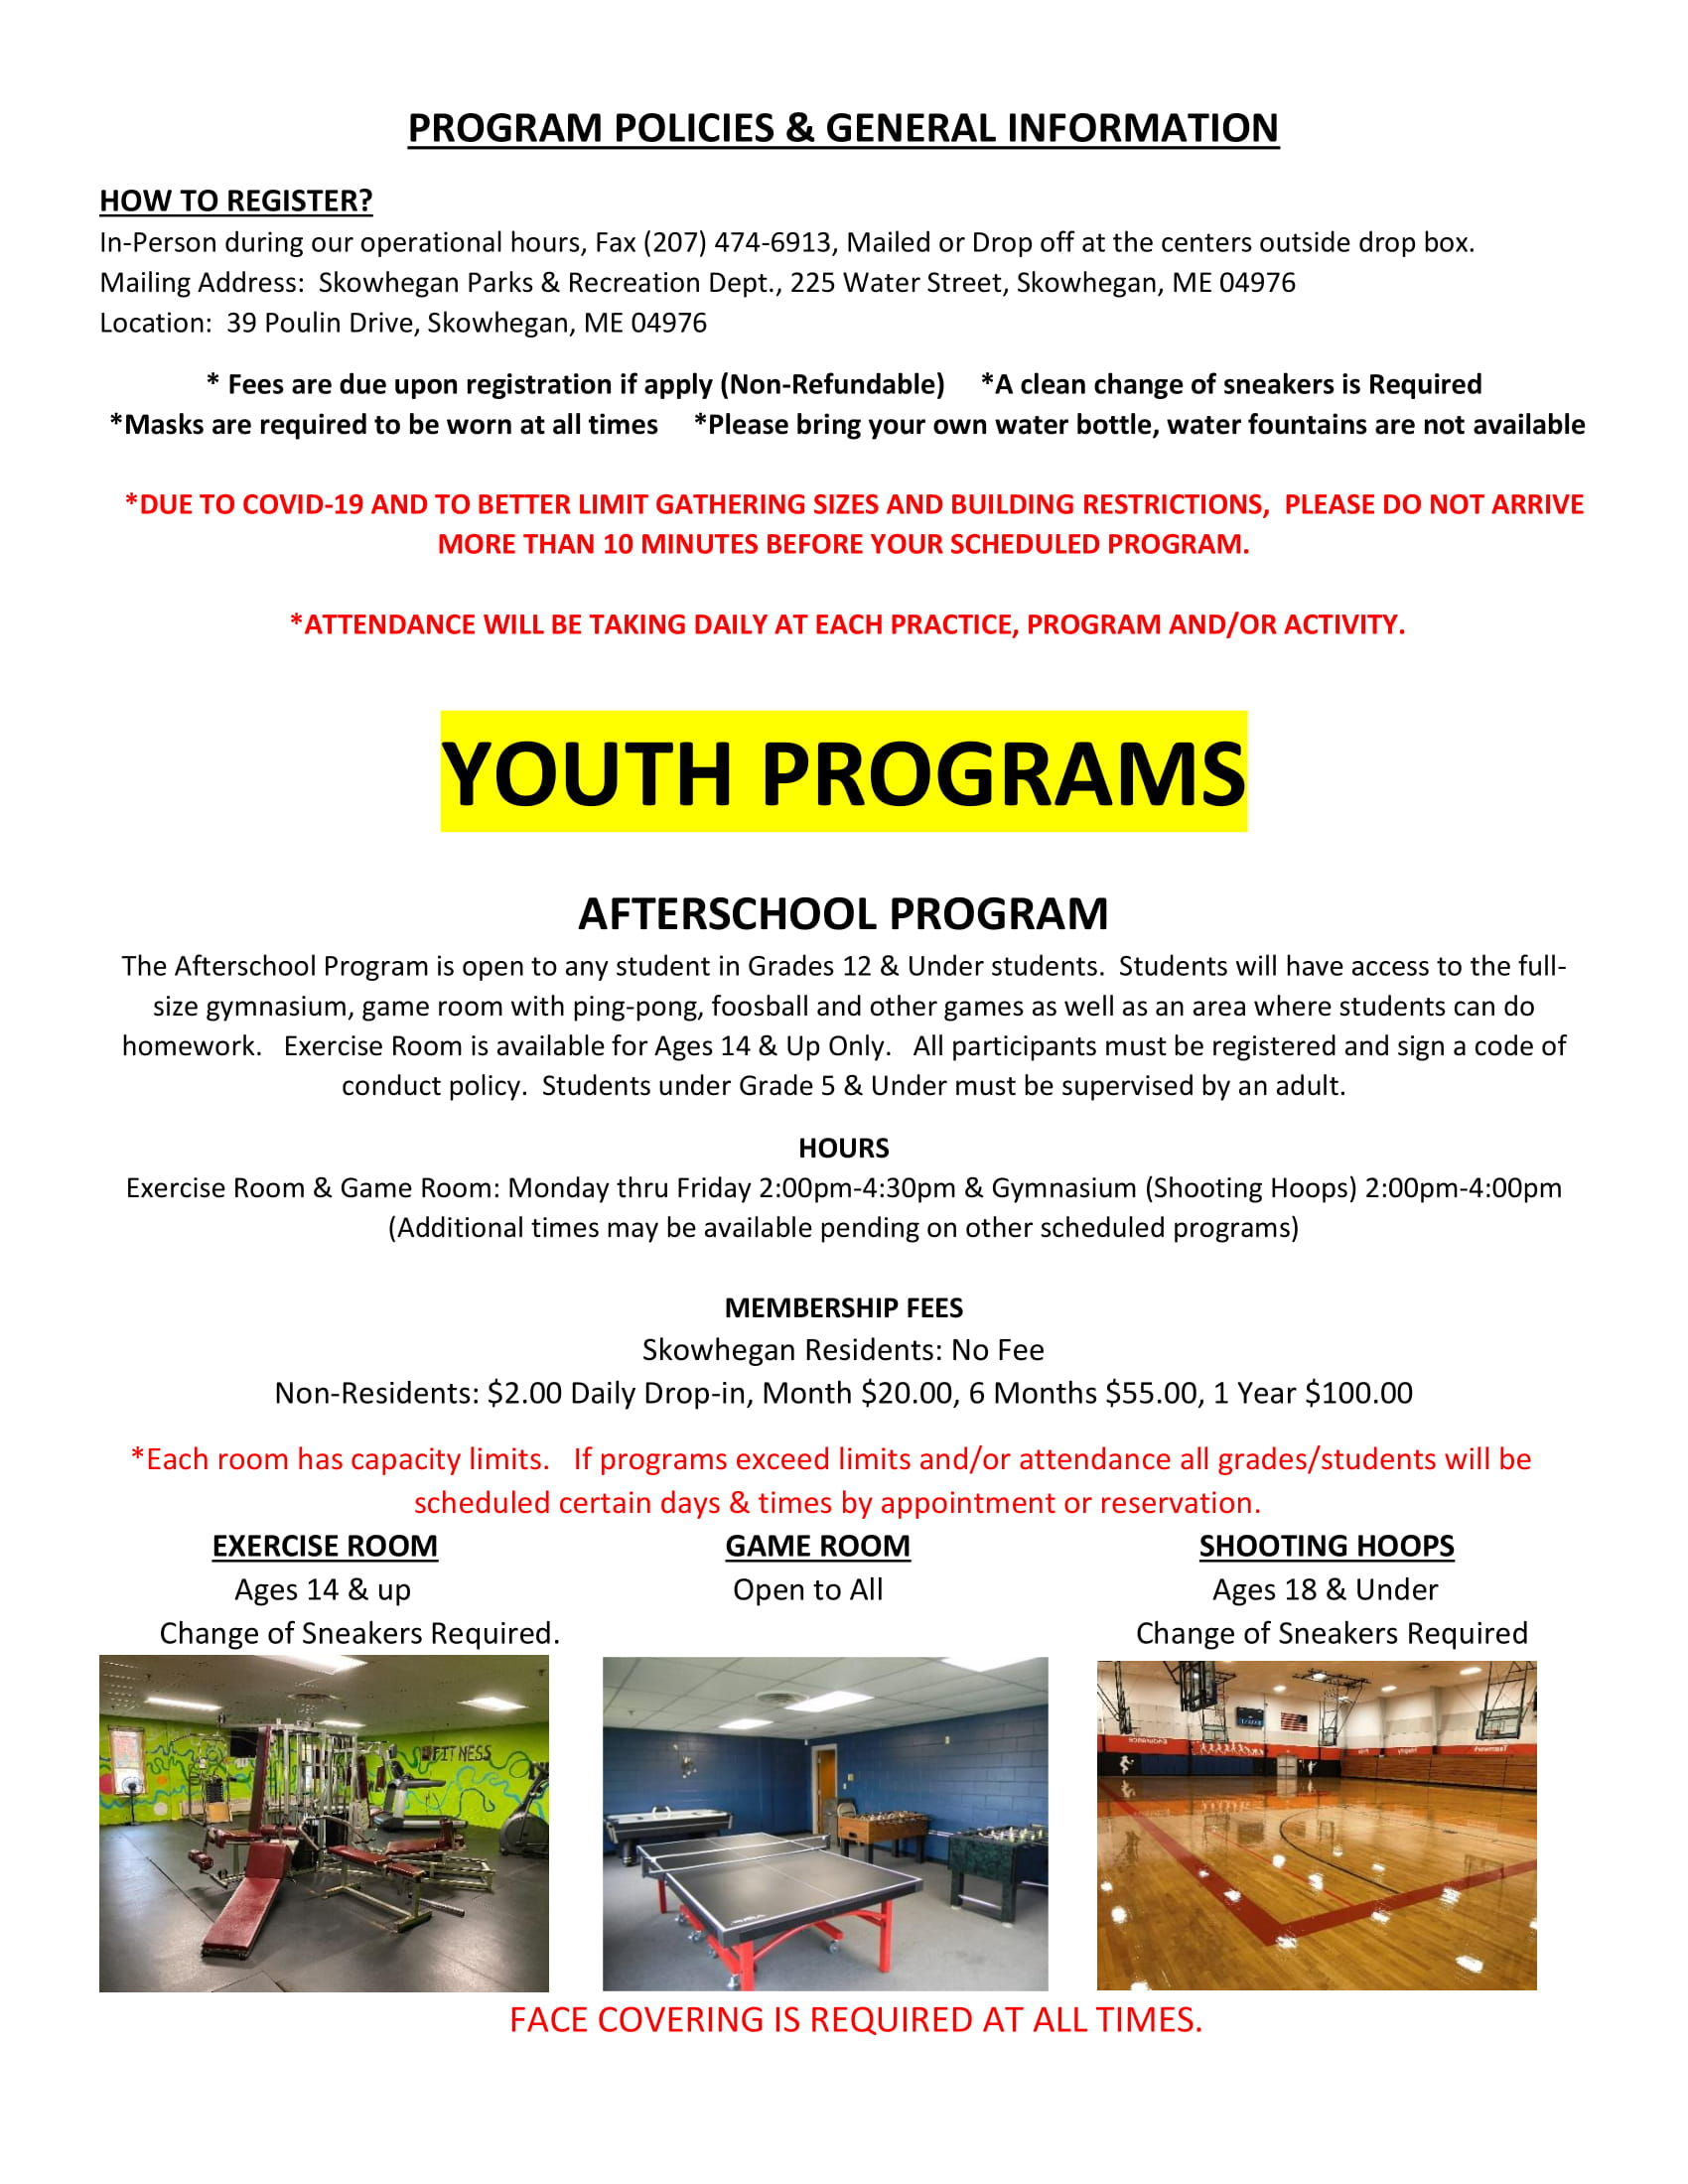 2020 WINTER NEWSLETTER PROGRAM GUIDE-3